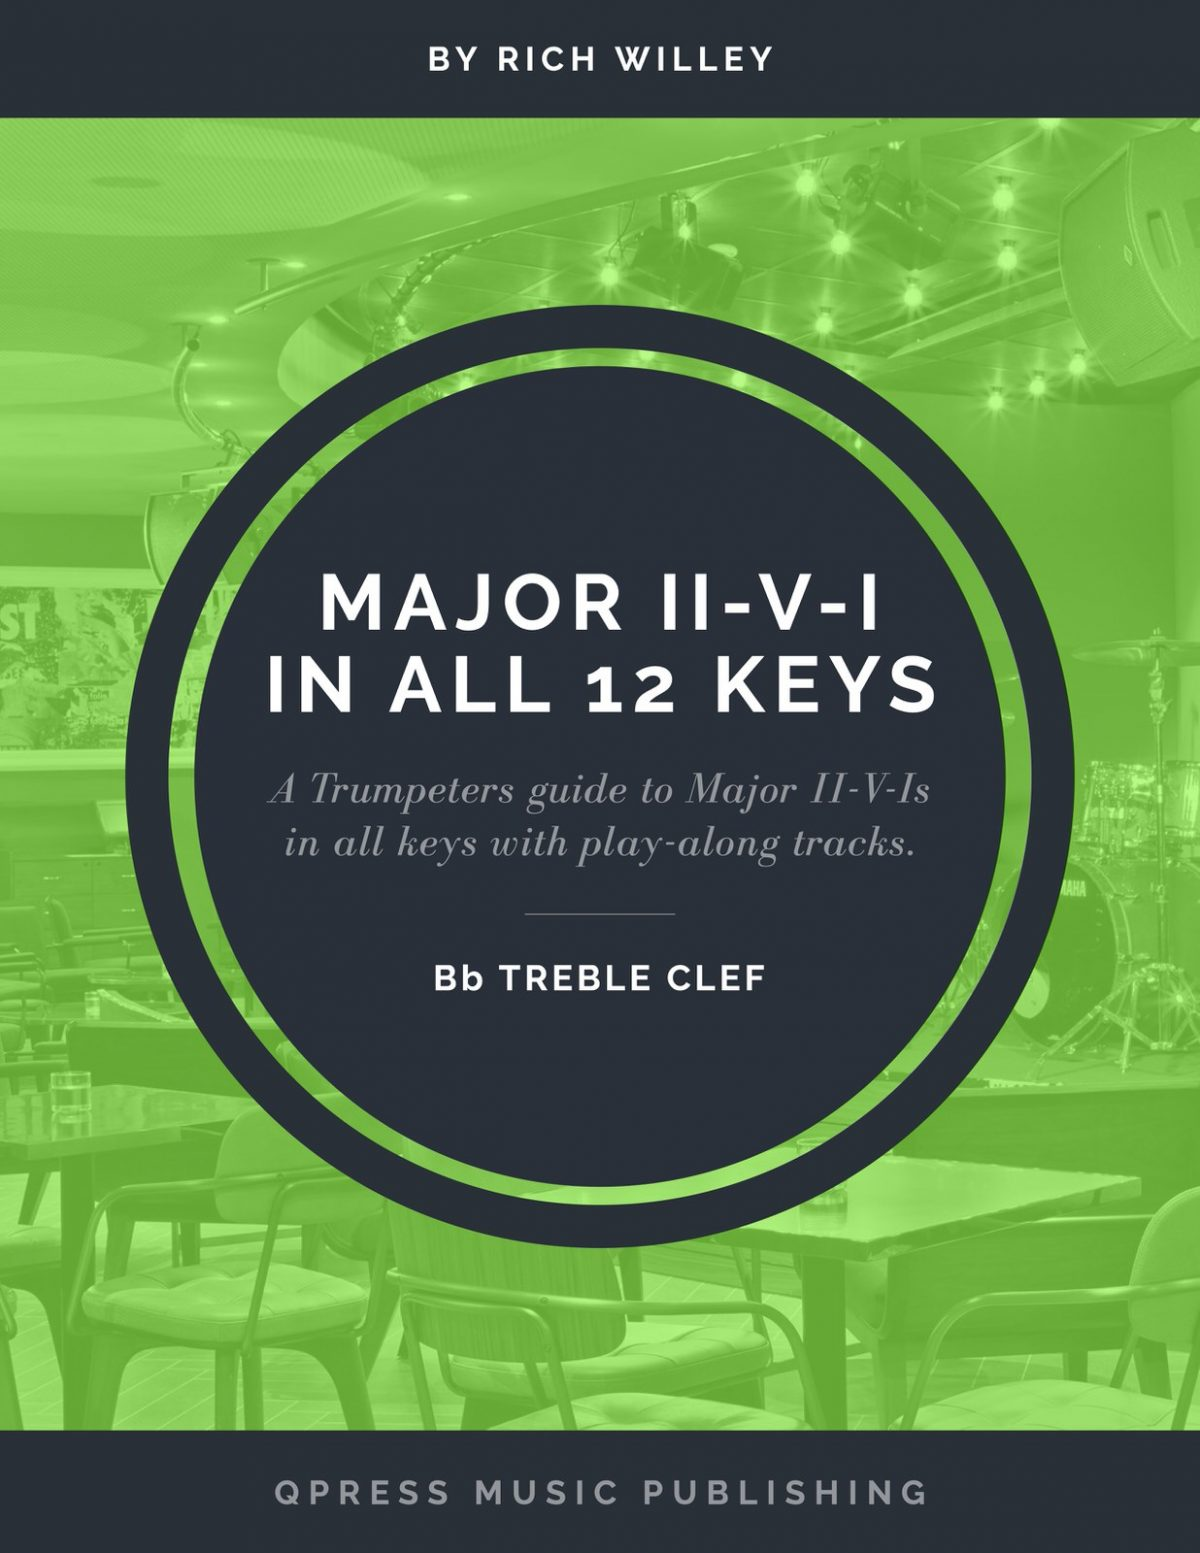 Willey, Major II-V-I in 12 Keys (Treble Clef)-p001